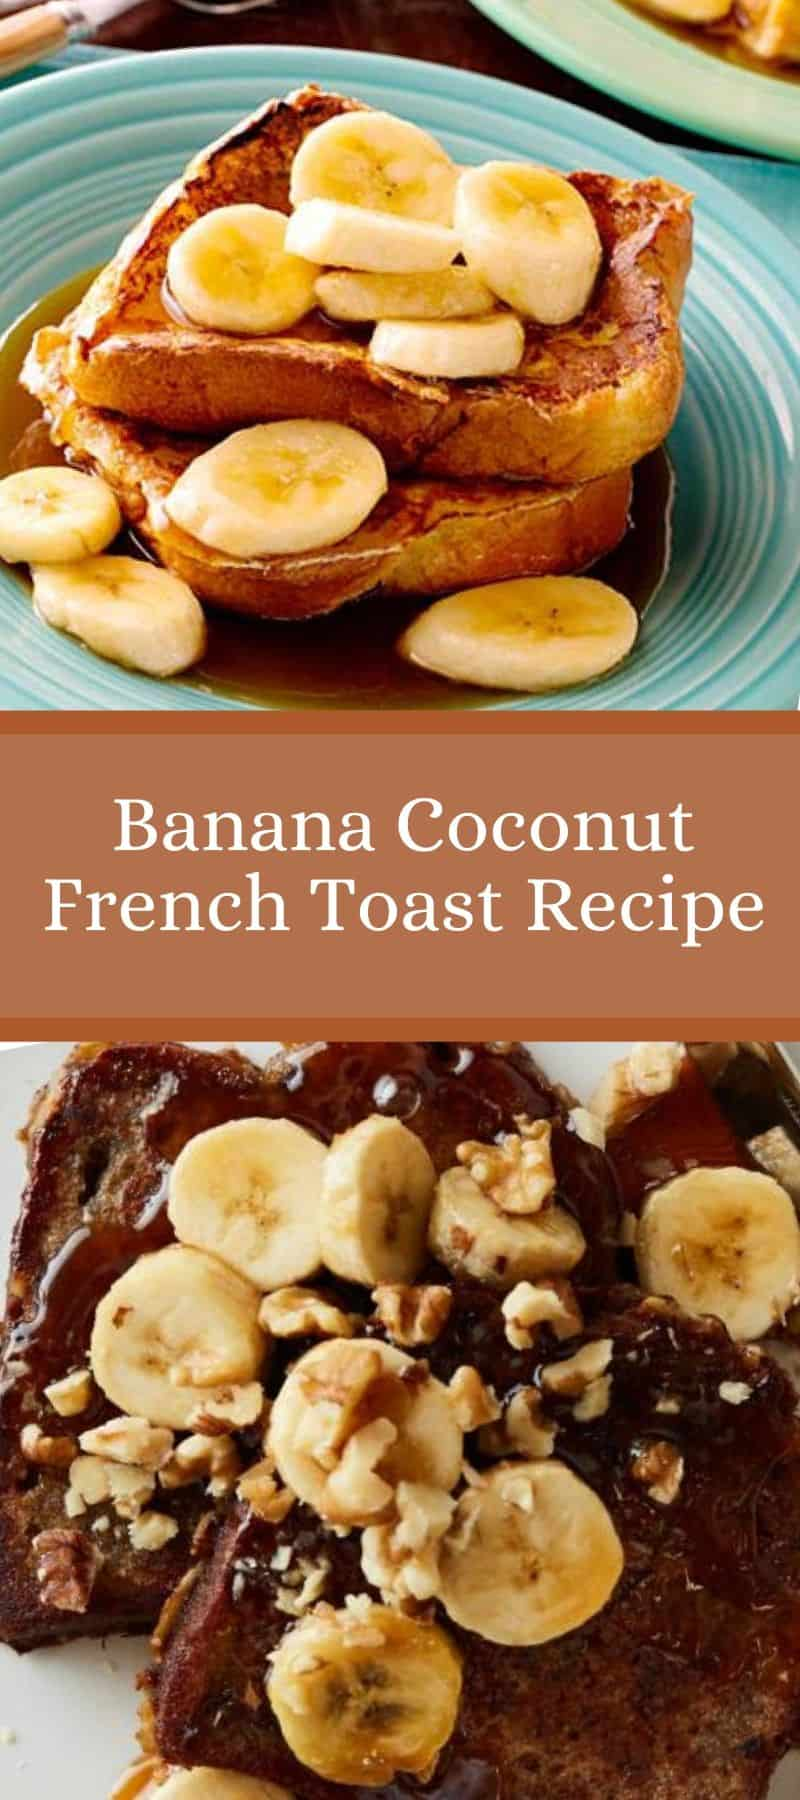 Banana Coconut French Toast Recipe